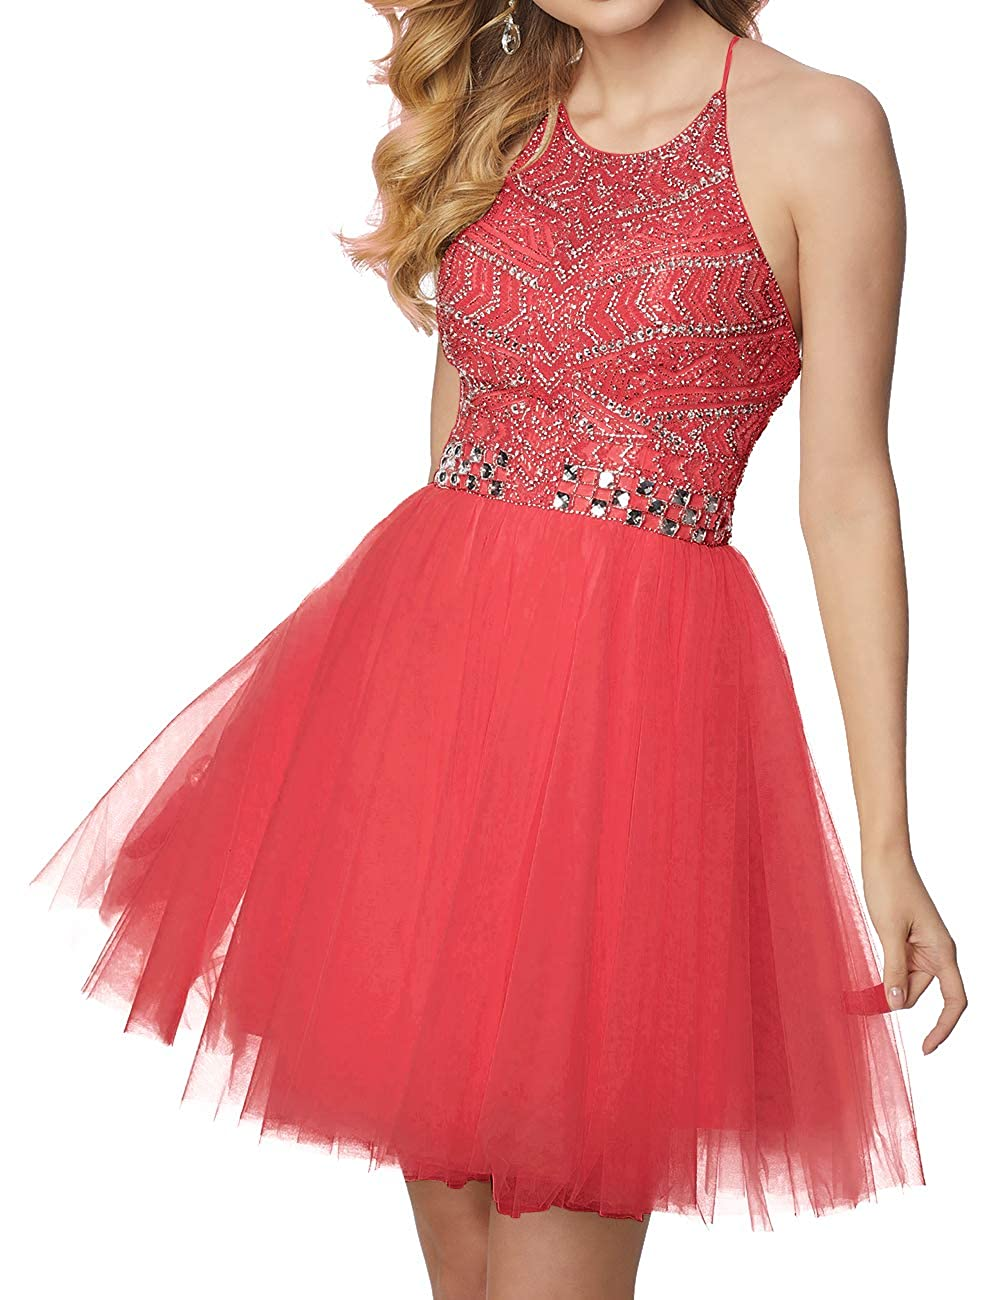 Coral Short Homecoming Dresses Tulle Halter Cocktail Prom Gowns Beads Formal Evening Party Dress